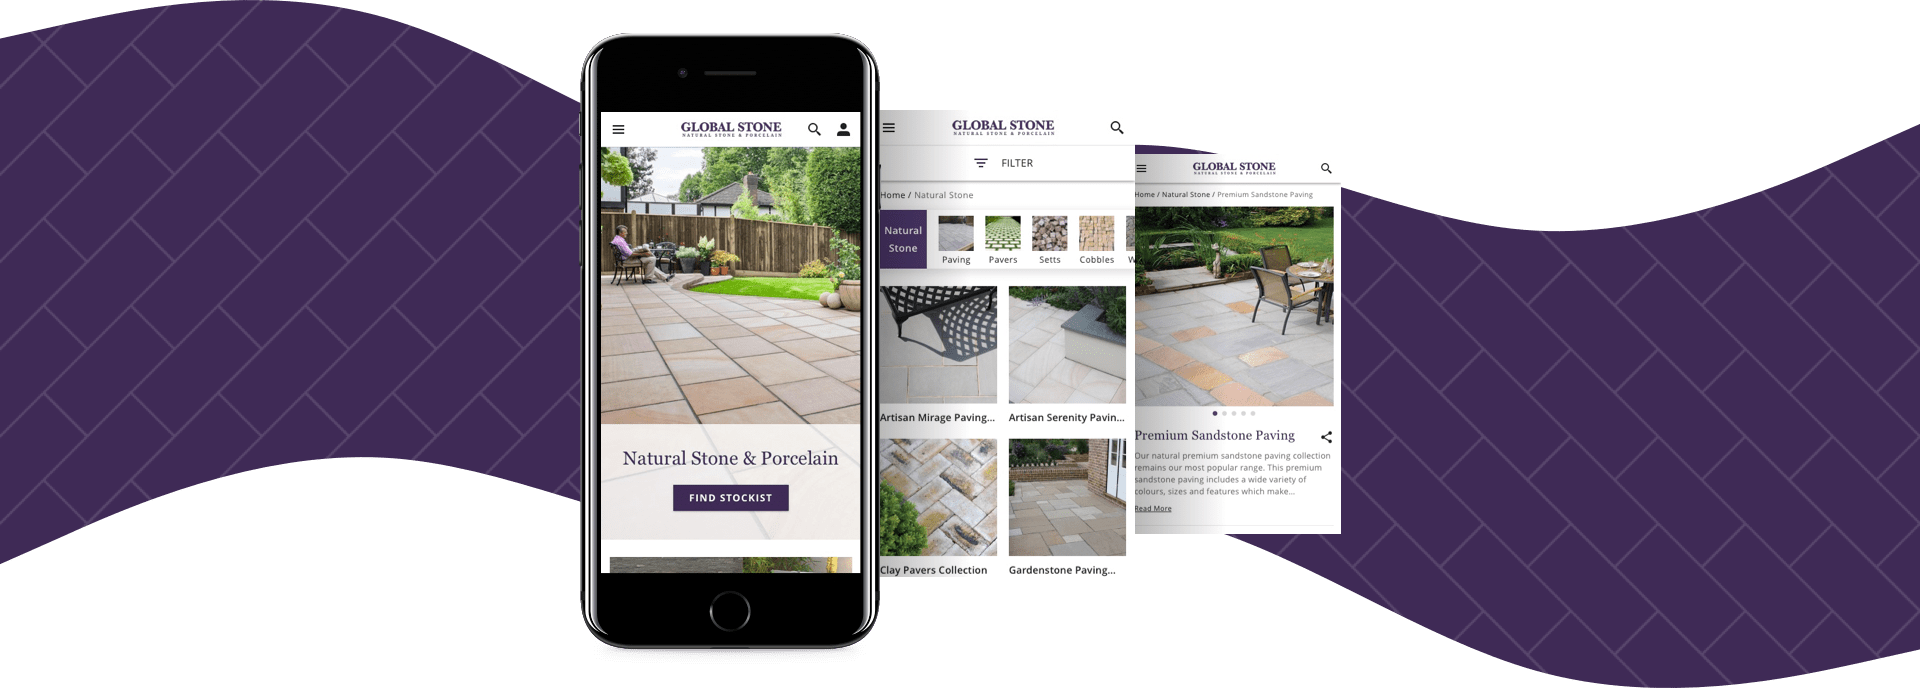 Magento IT Solution Global Stone Paving